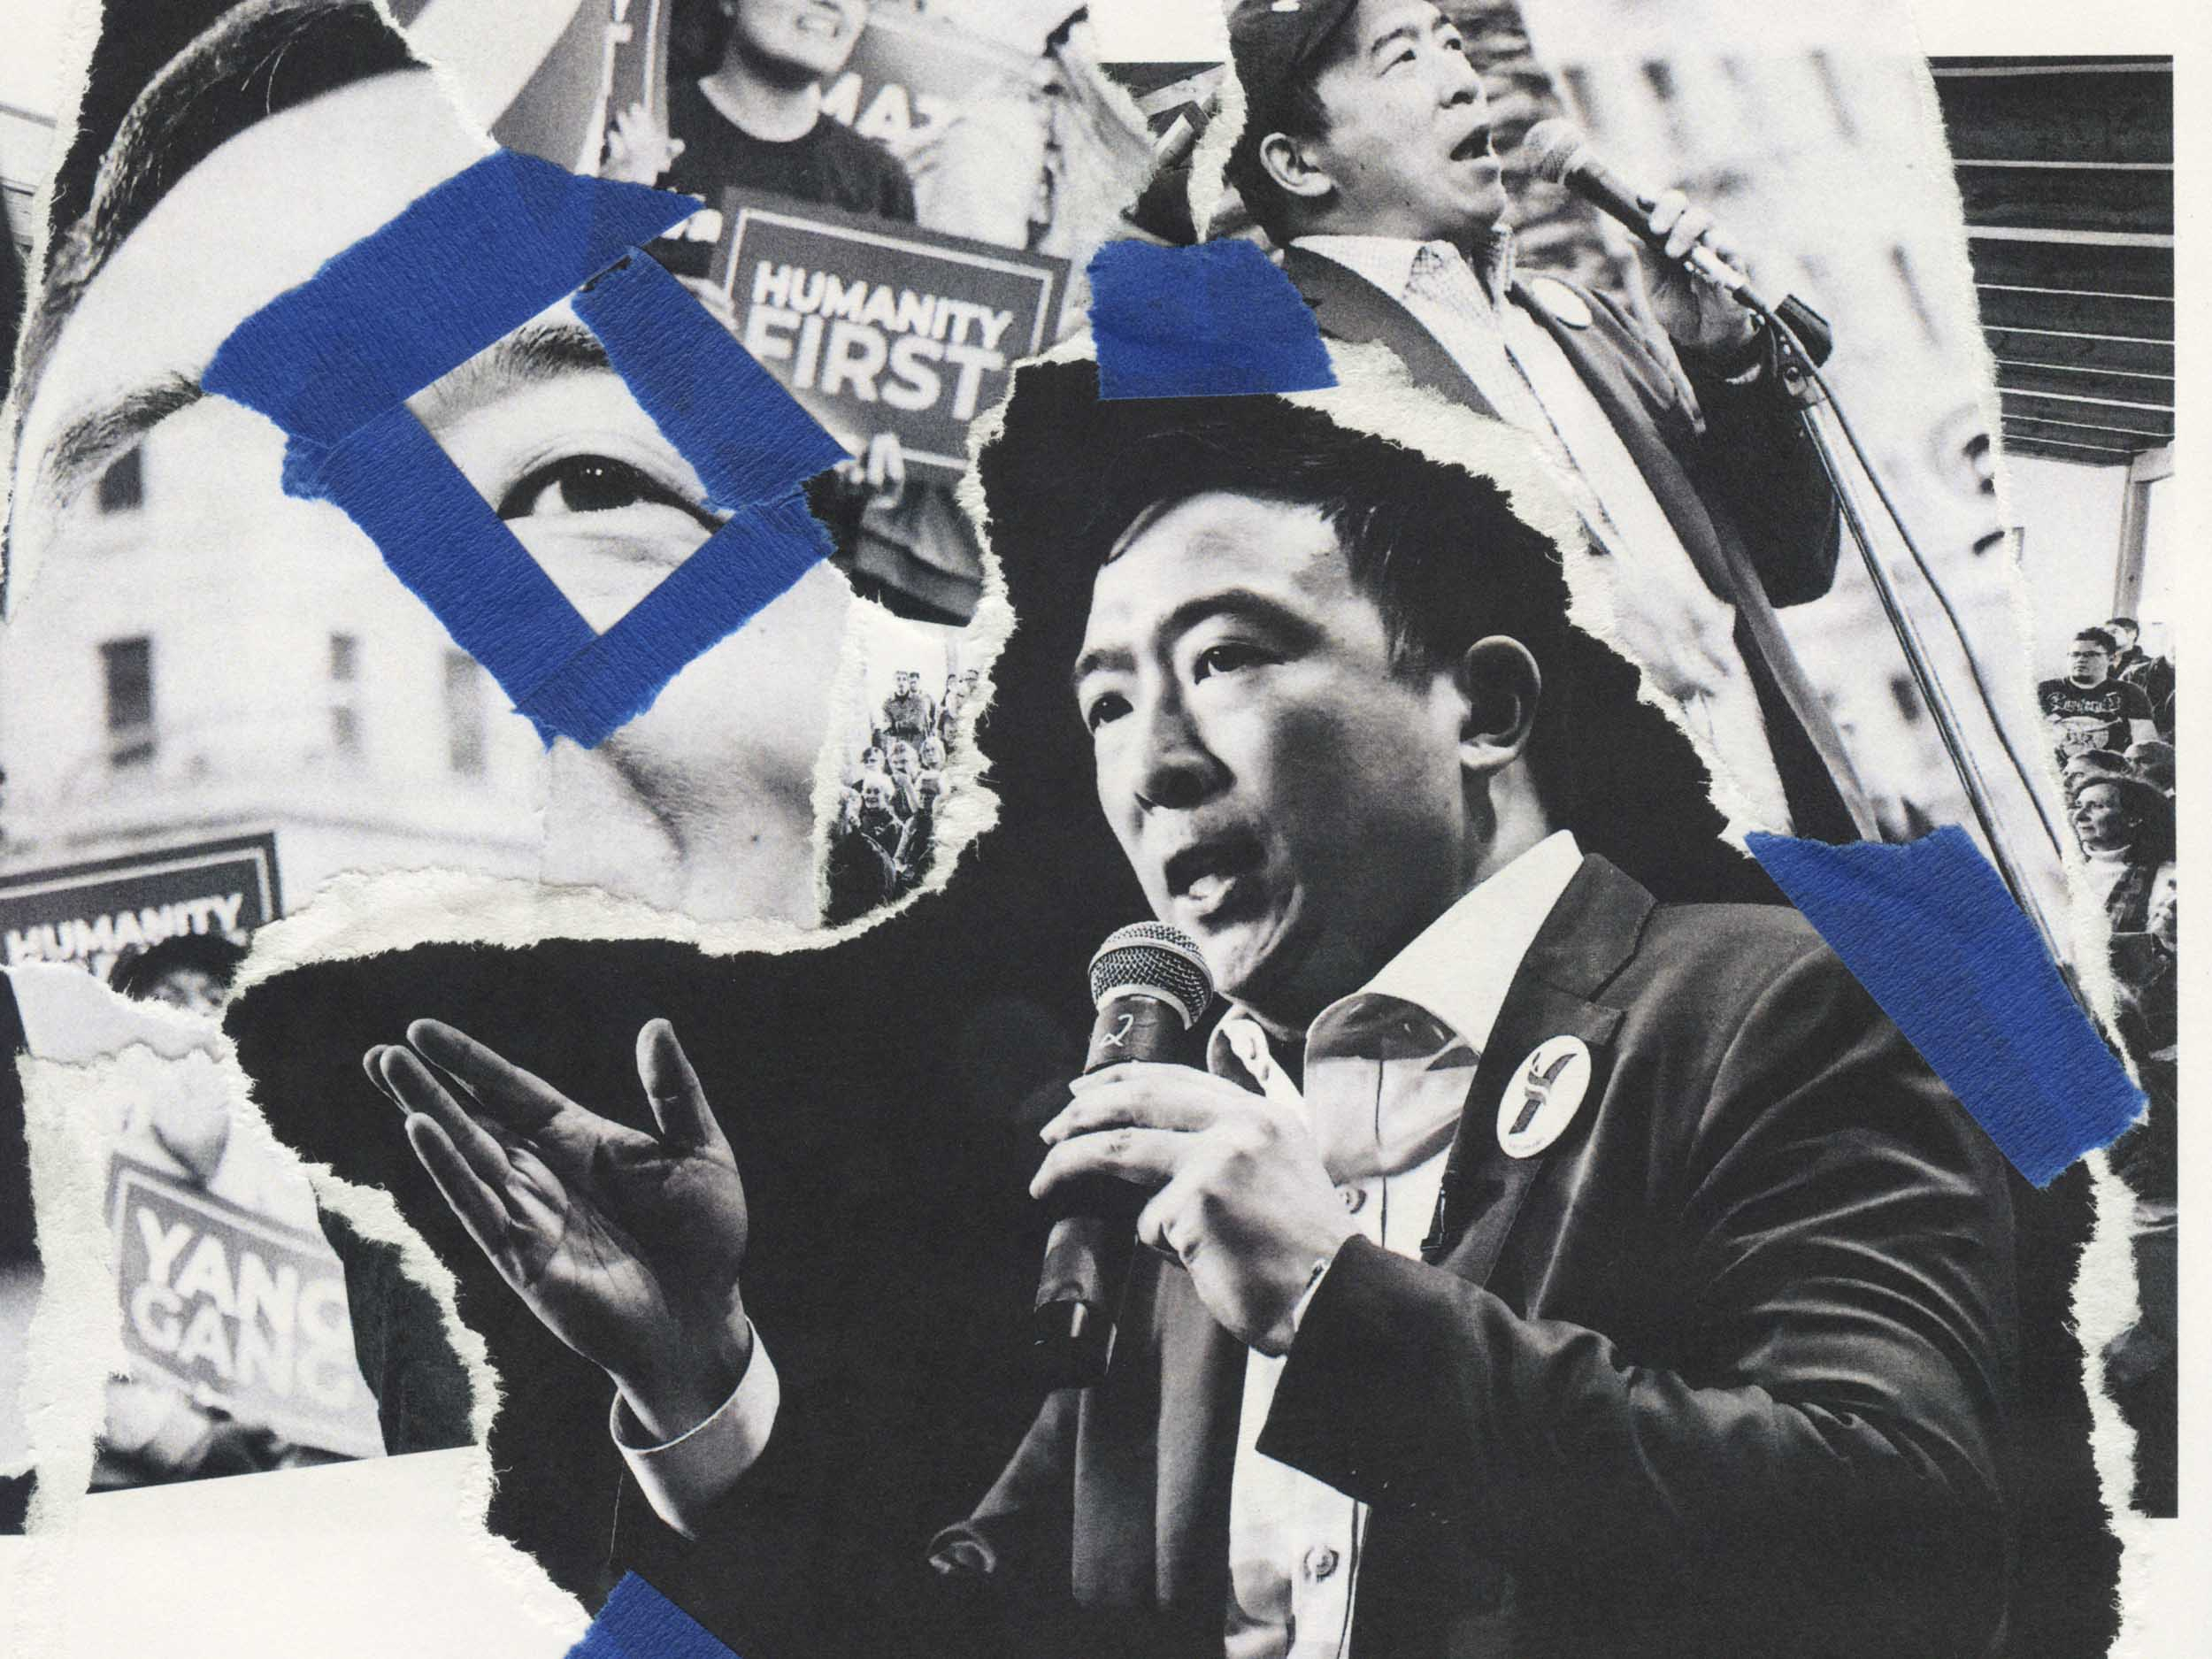 Andrew Yang joins Document to discuss political polarization, universal basic income, and America's future